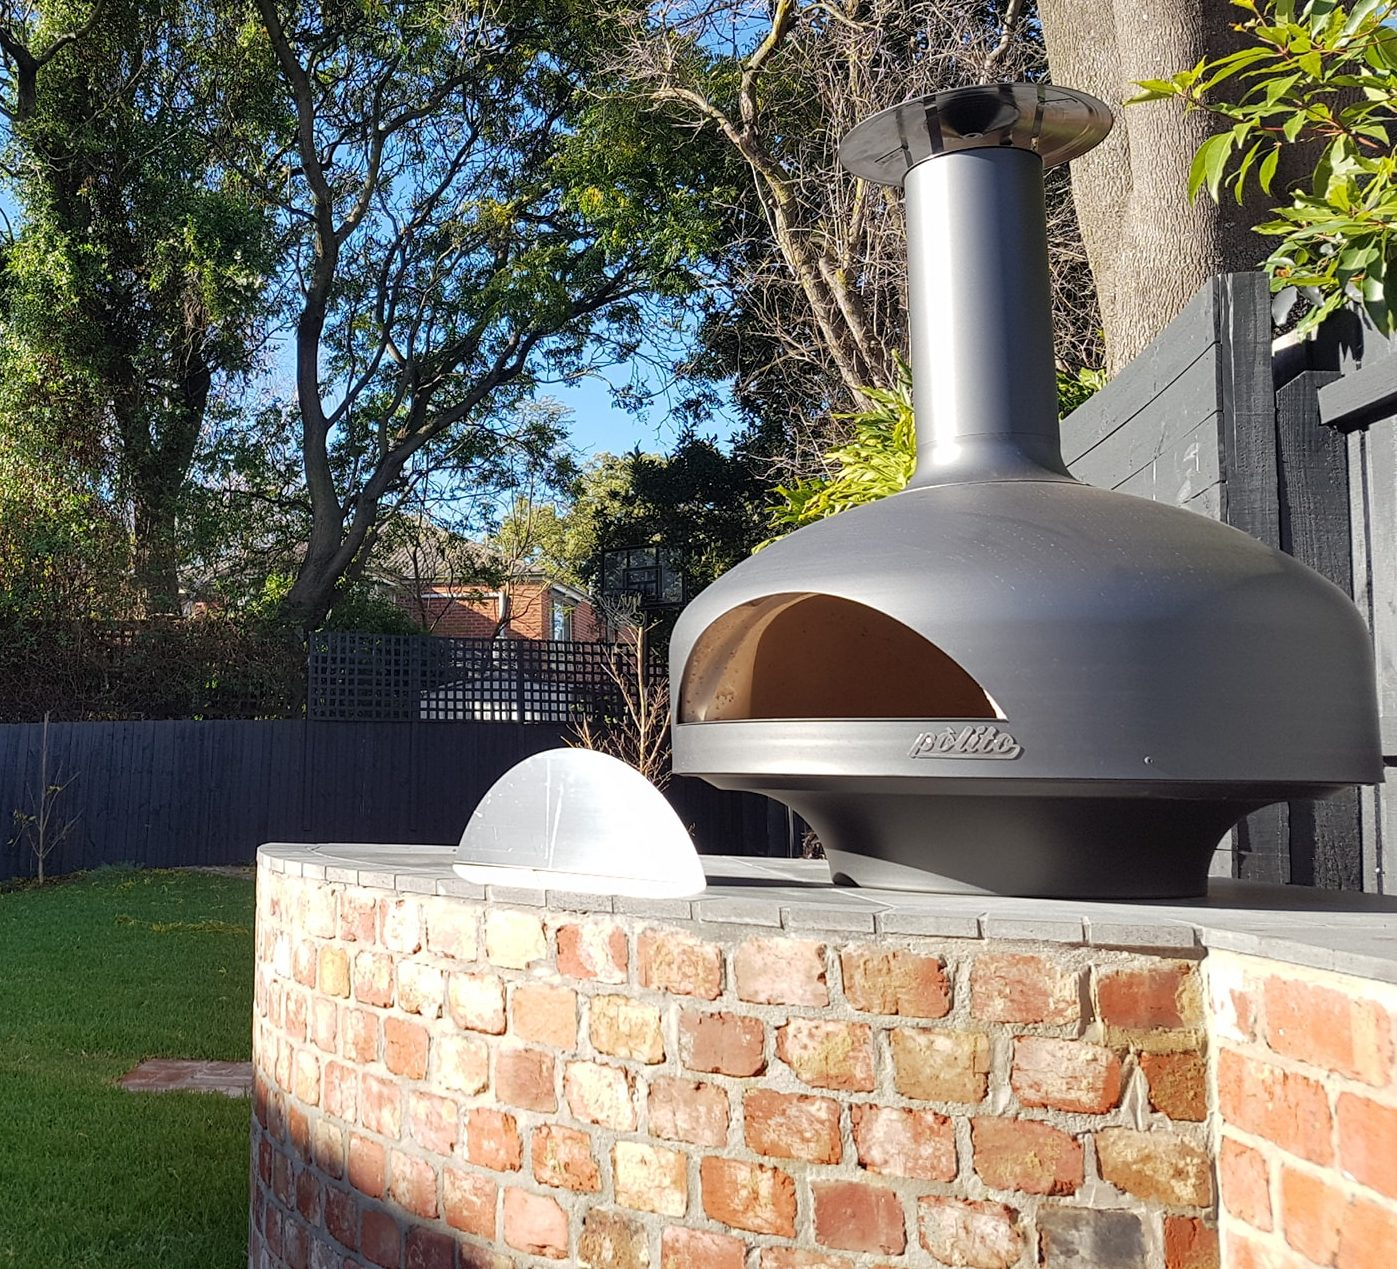 Giotto Benchtop Wood Fired Pizza Oven Pizza Ovens Australia Wide Range Of Pizza Ovens